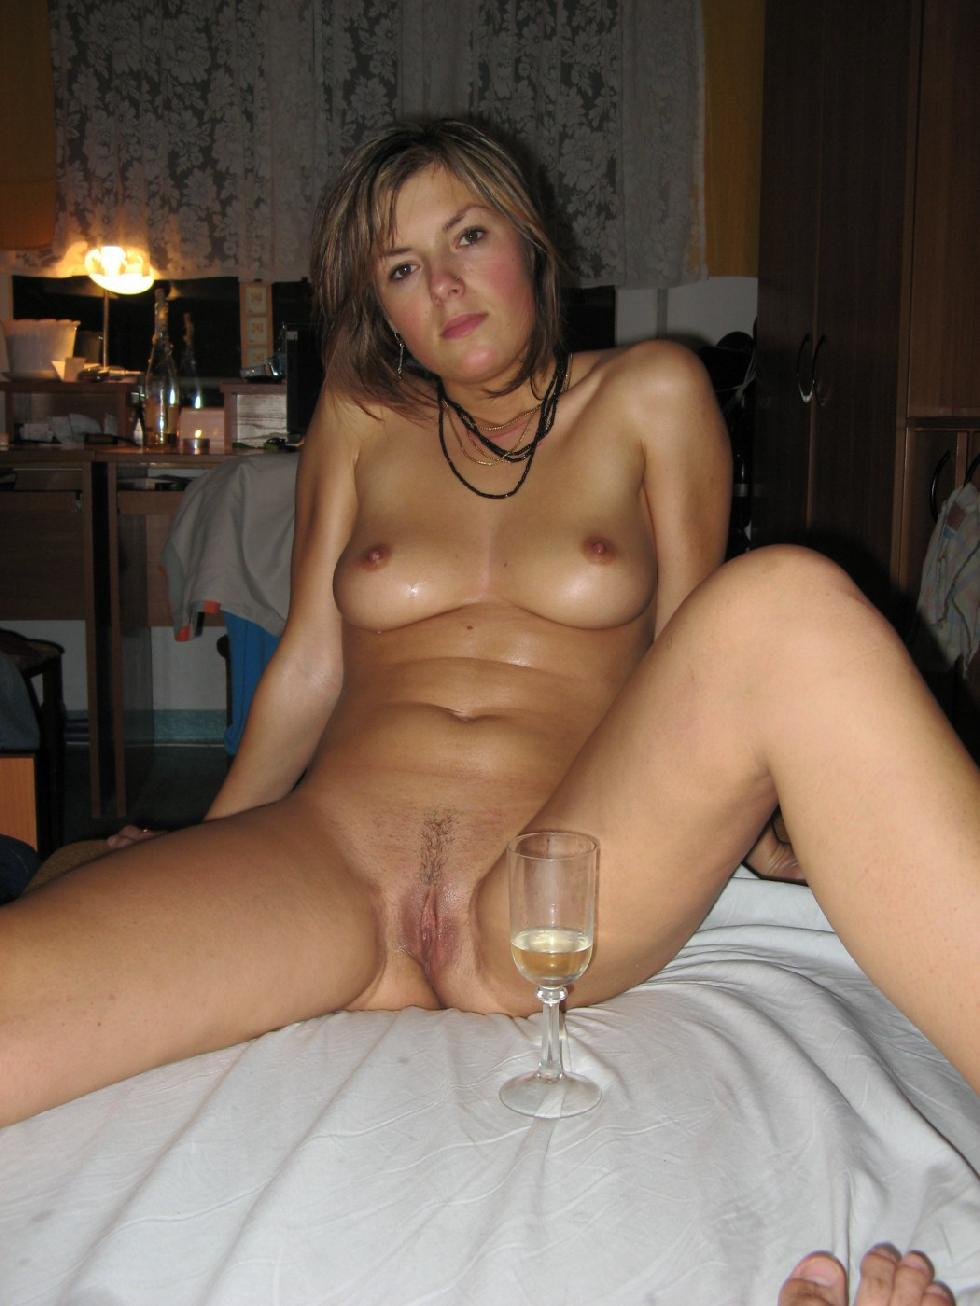 Nice evening with pretty girl - 10